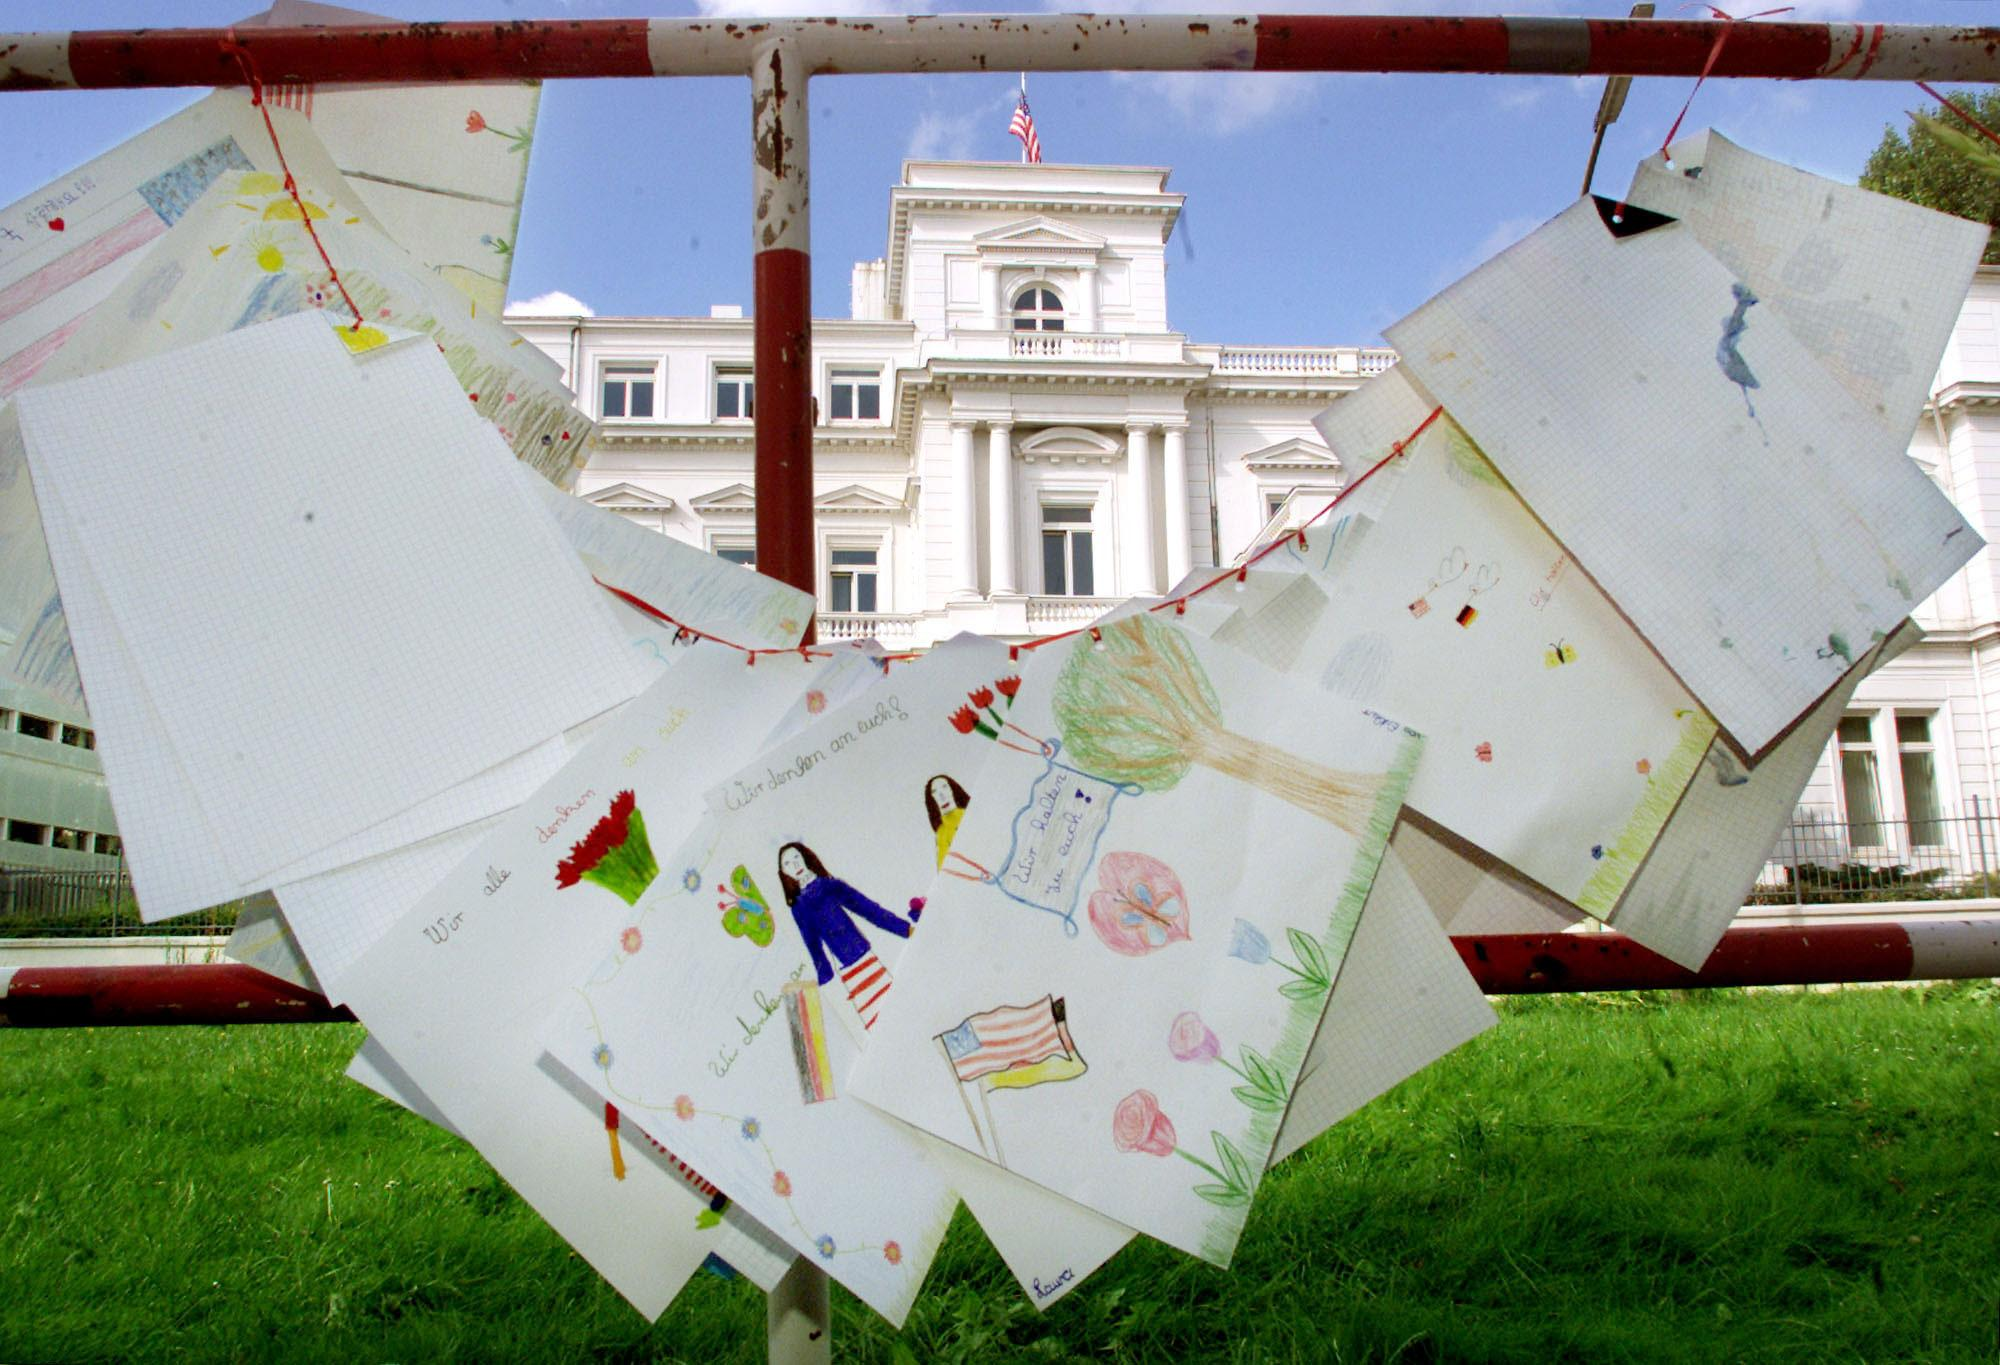 <p>Children's drawings expressing condolence over the victims of the terrorist attacks in the United States are fixed at the barriers in front of the U.S. consulate general in Hamburg, northern Germany, on Wednesday, Sept. 12, 2001. (AP Photo/Heribert Proepper) </p>